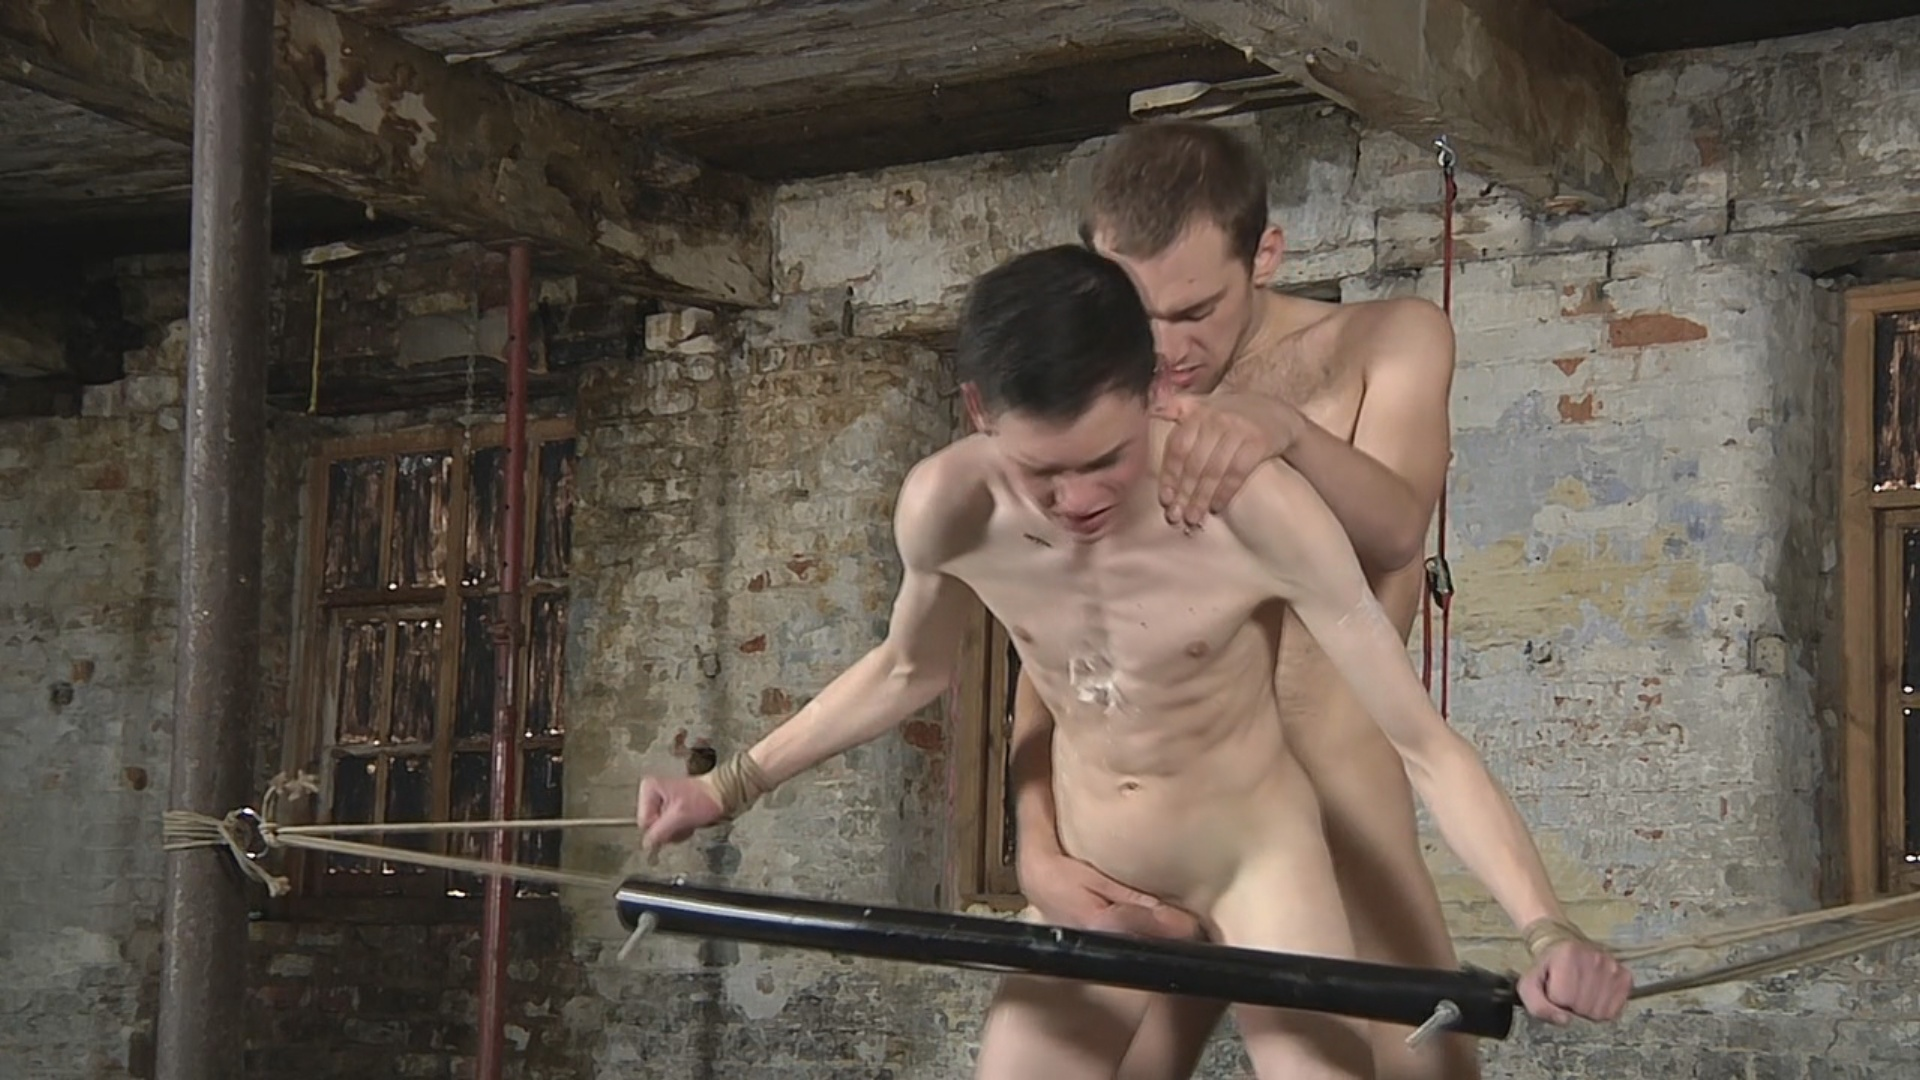 Boynapped 345: Bend Over And Take It Hard Xvideo gay